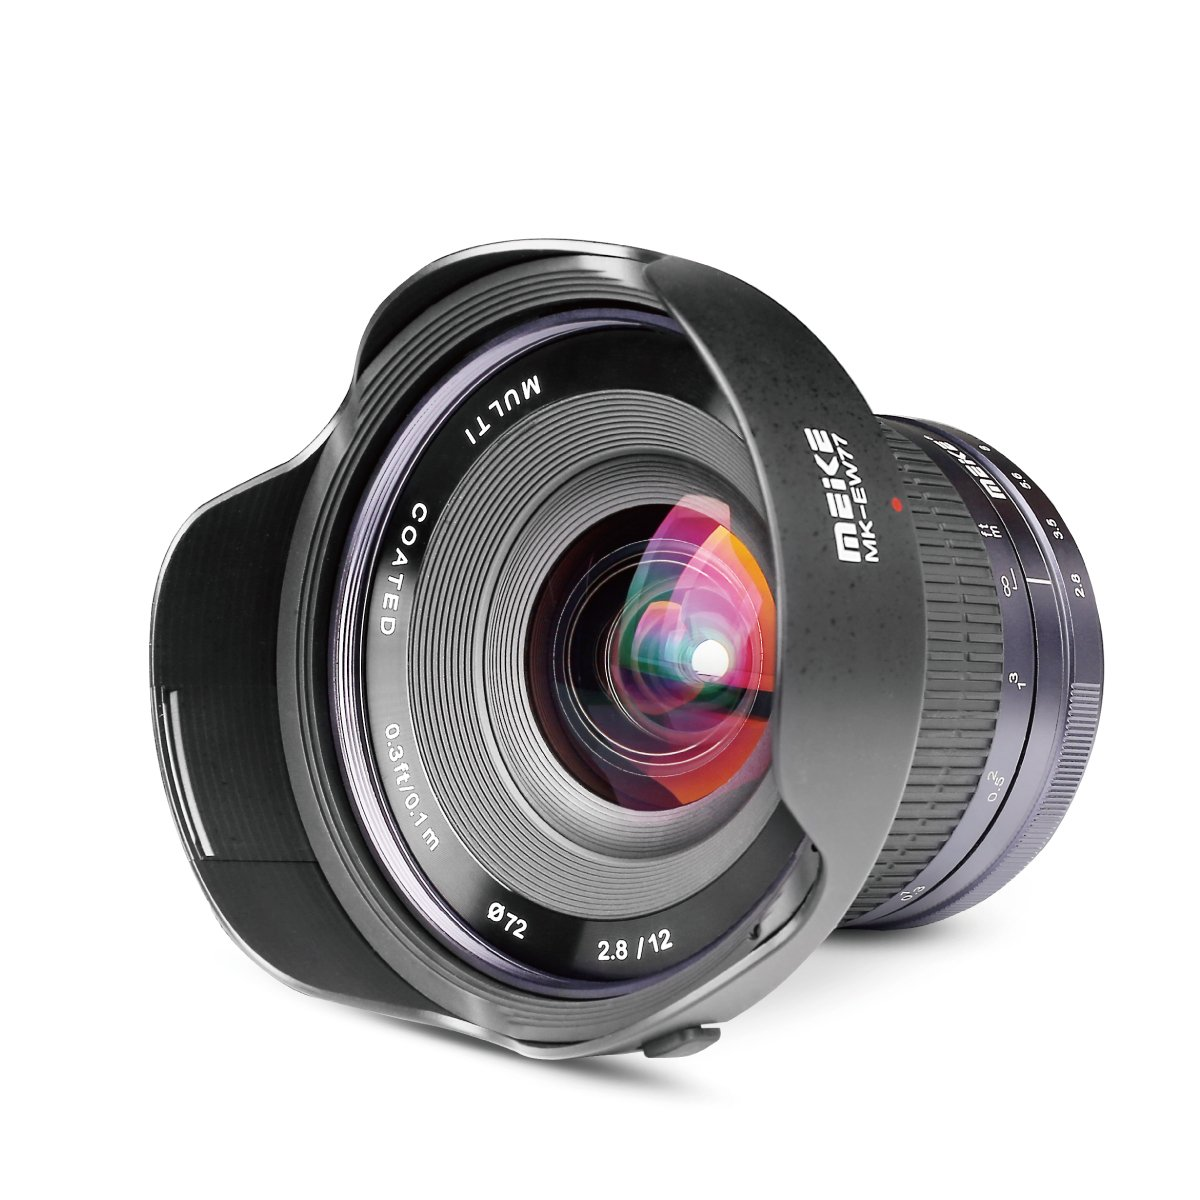 Meike 12mm F/2.8 Ultra Wide Angle Manual Foucs Prime Lens for Sony E Mount APS-C Mirrorless Cameras